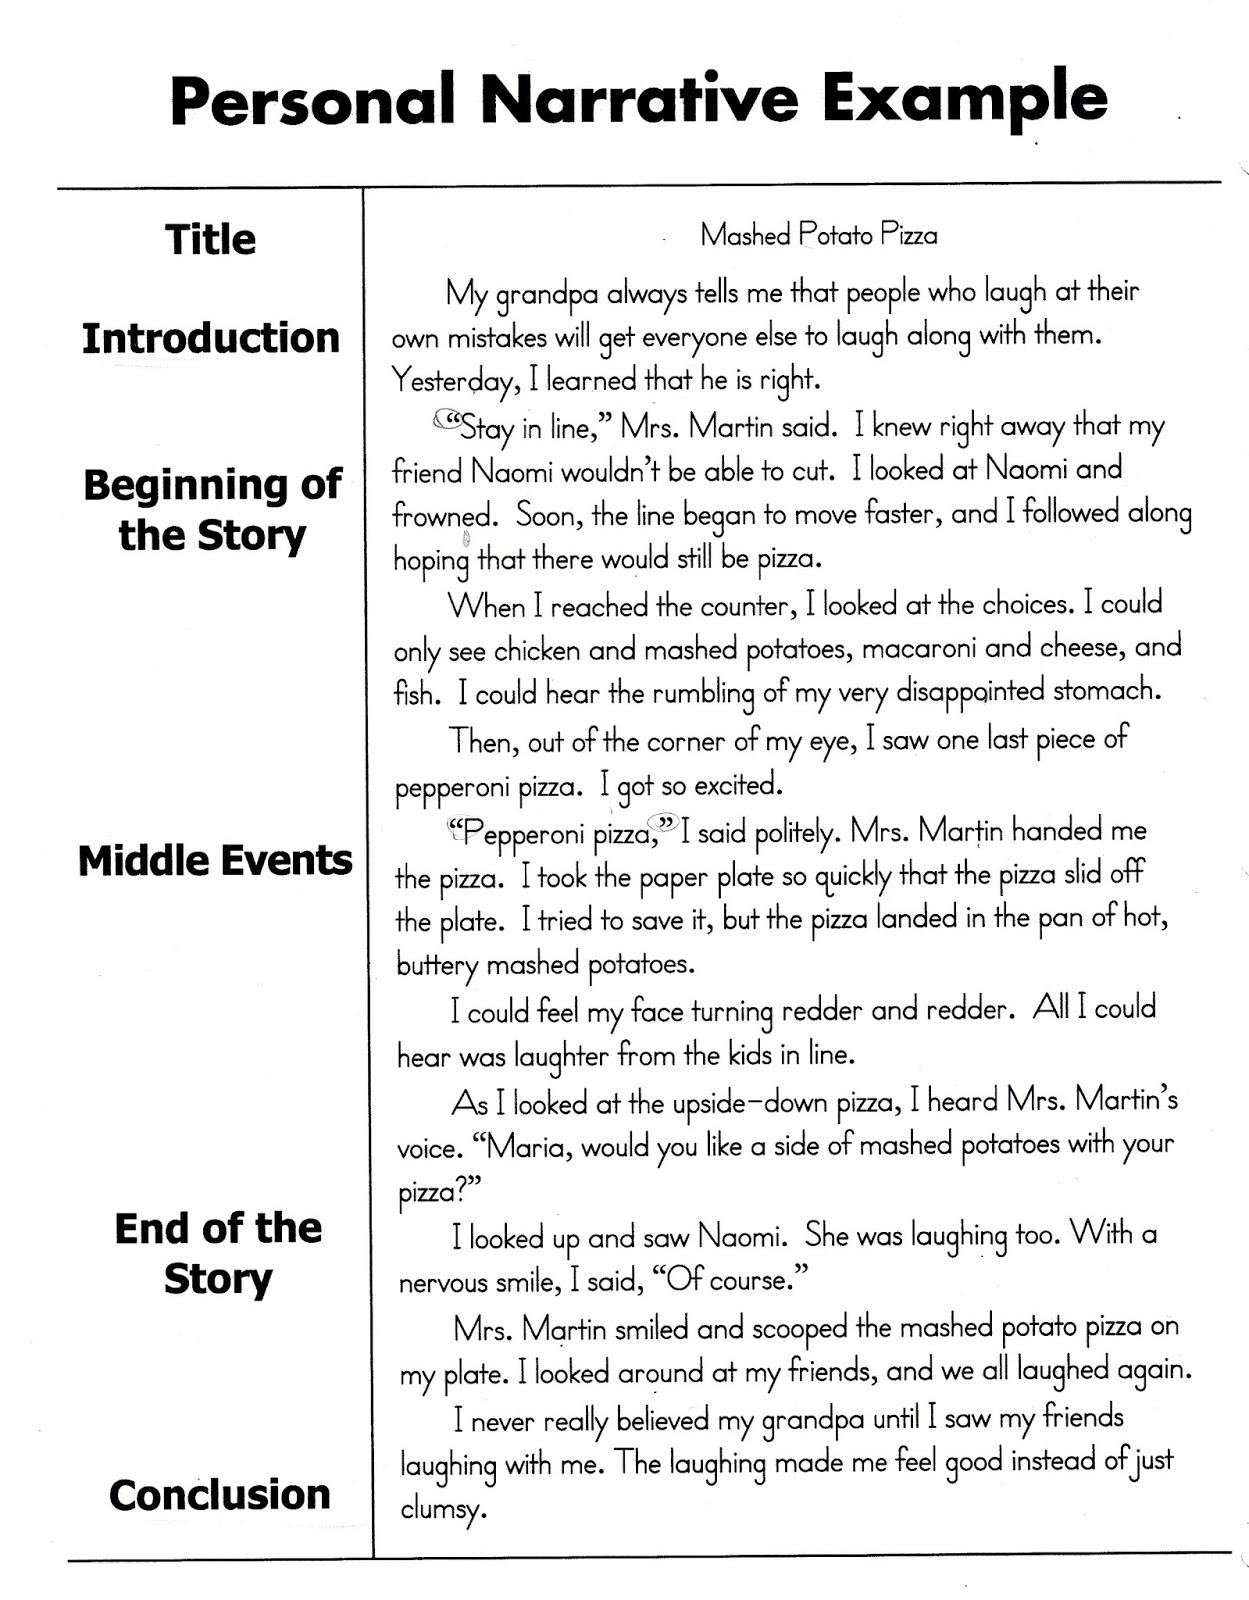 A personal narrative essay